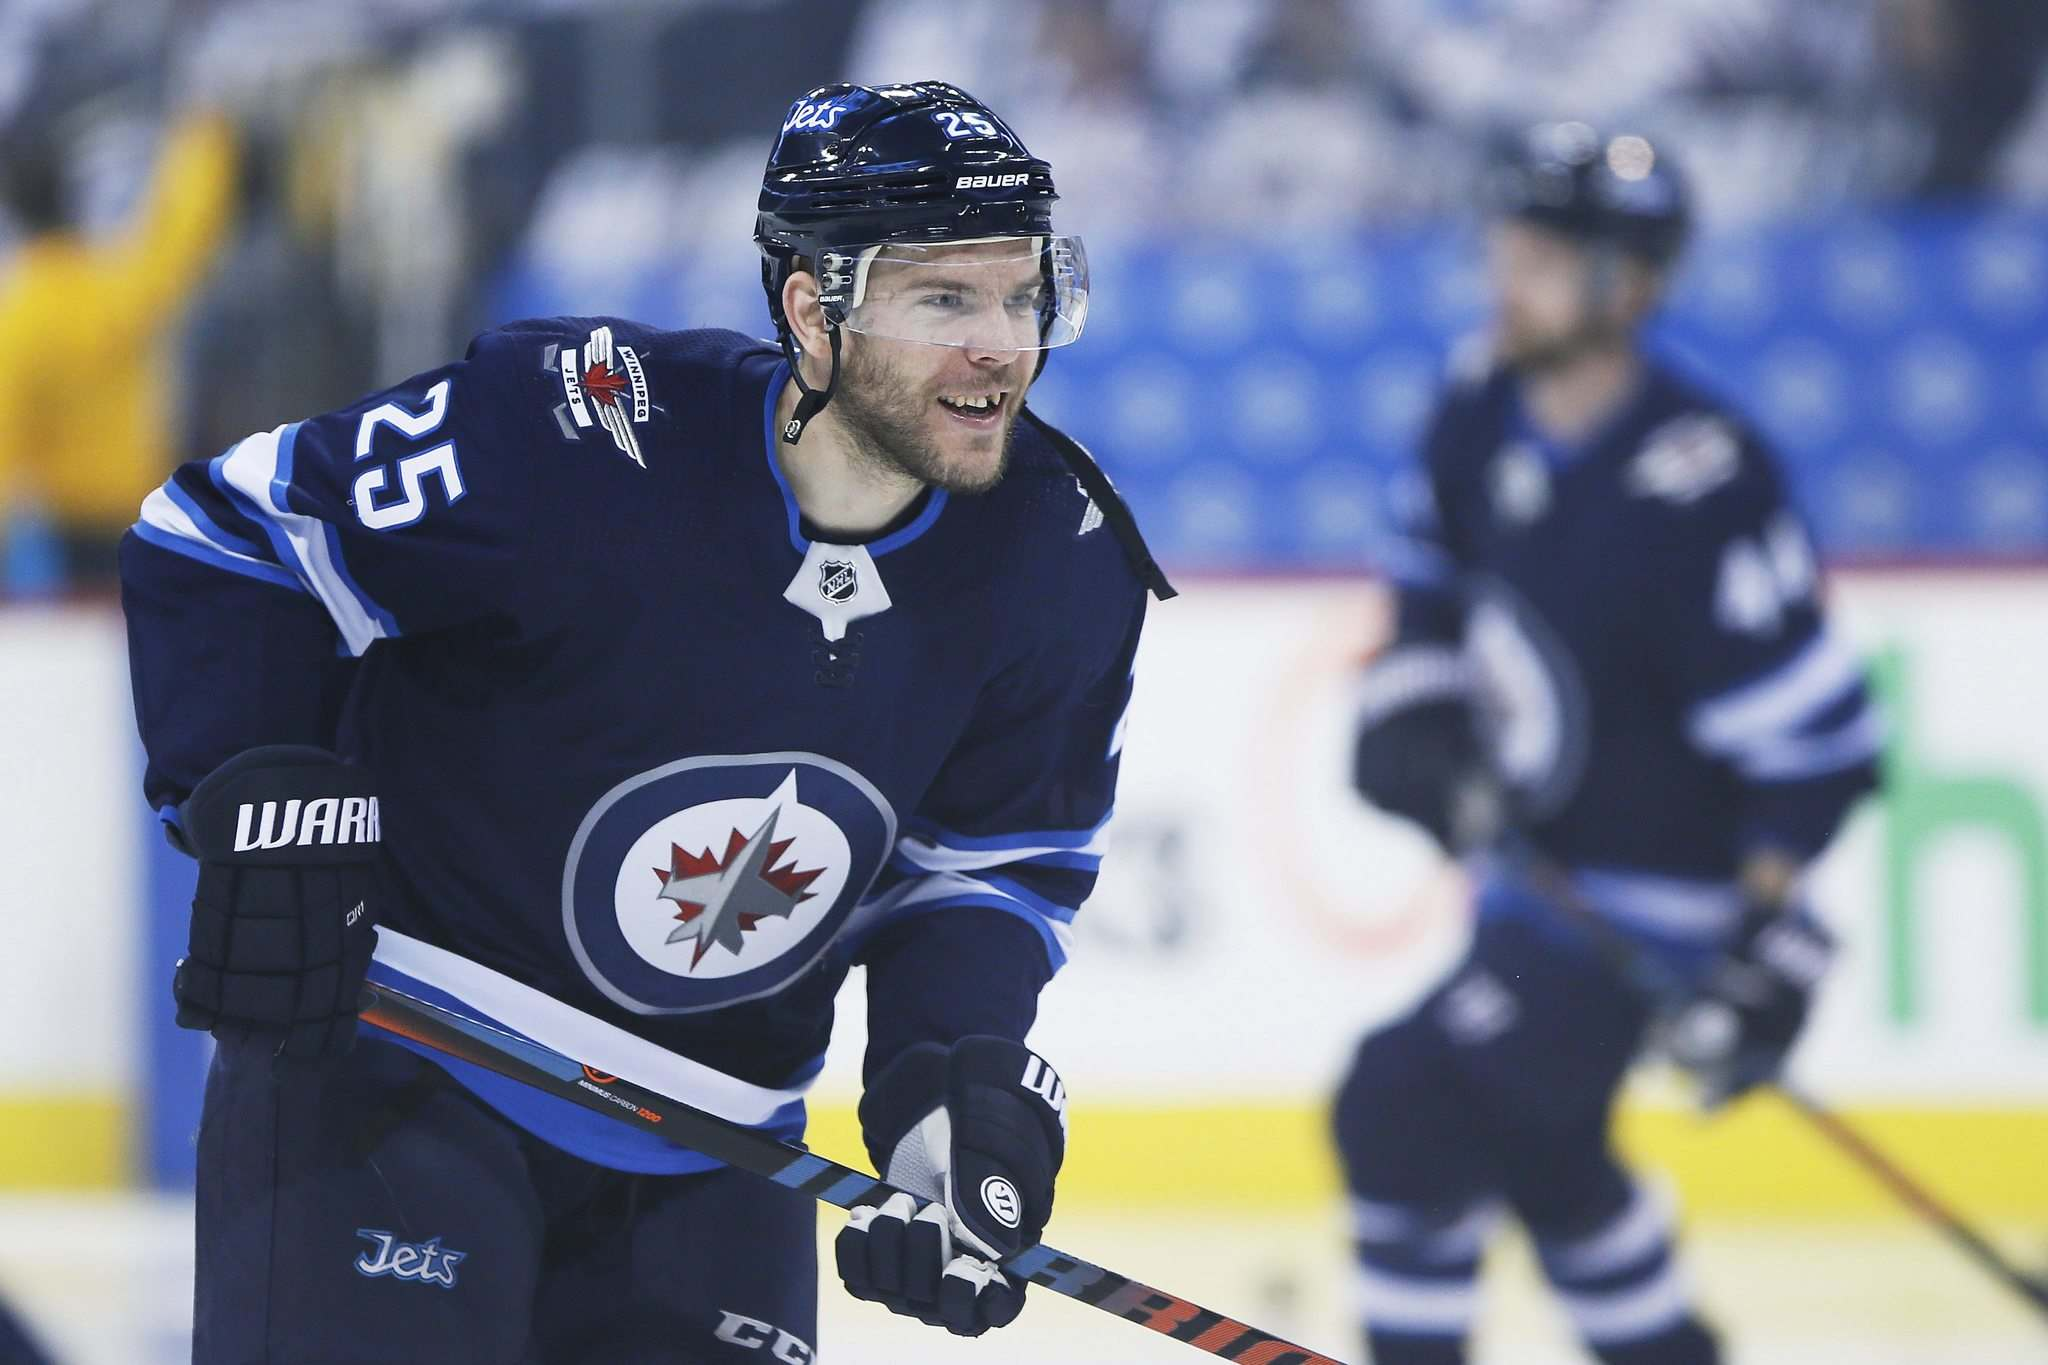 Paul Stastny joined the Jets for the club's 2018 playoff run, skated for Vegas for two seasons and rejoined the Jets last season. (John Woods / Winnipeg Free Press files)</p>